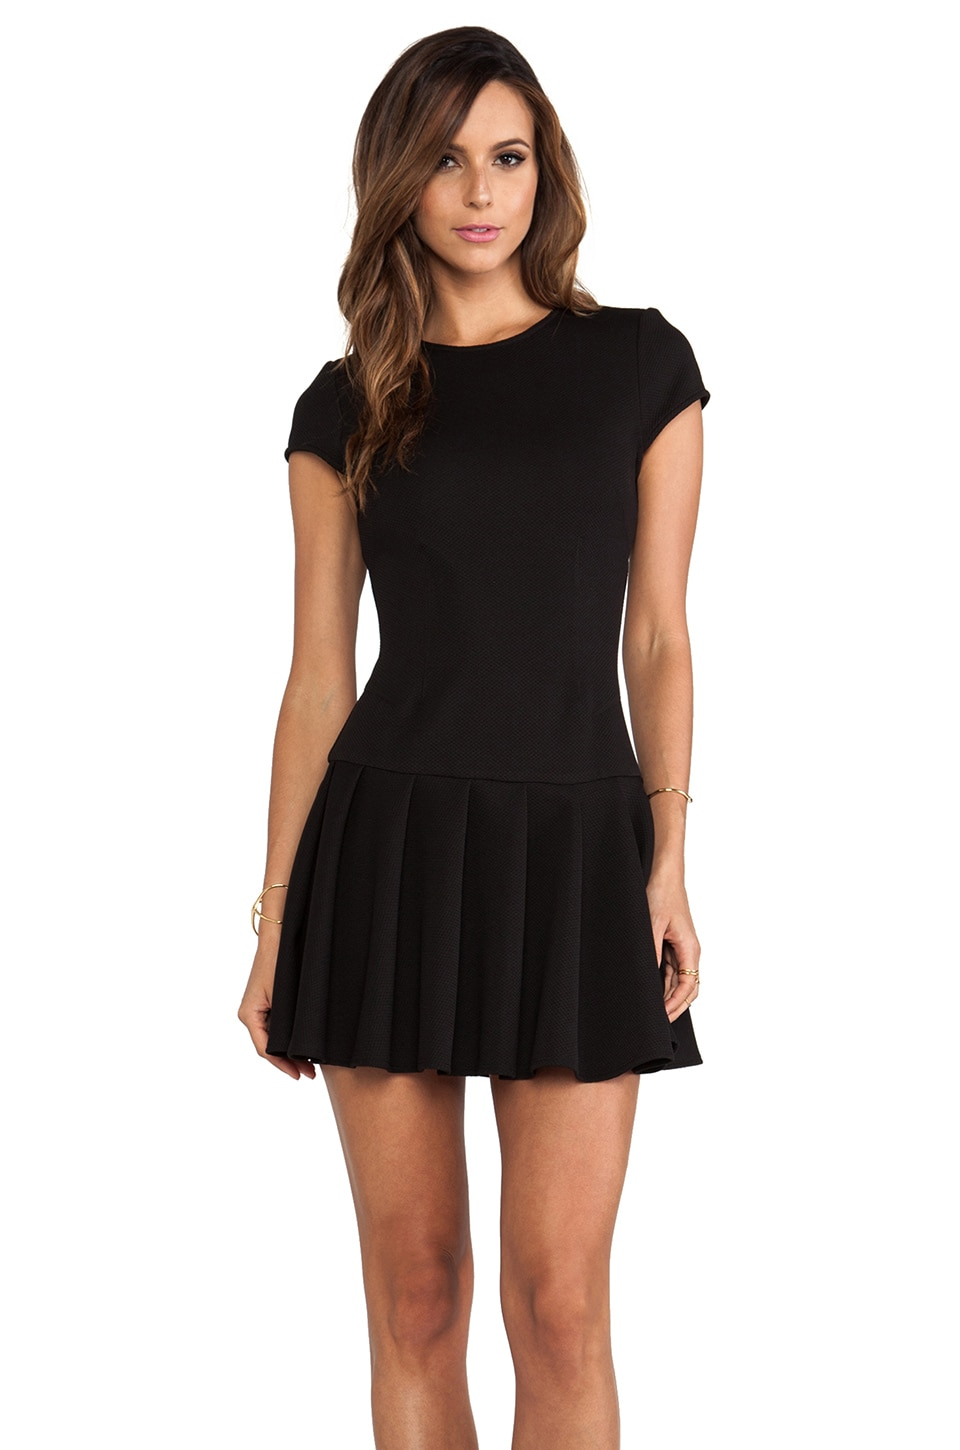 Torn by Ronny Kobo Gina Short Sleeve Dress in Black